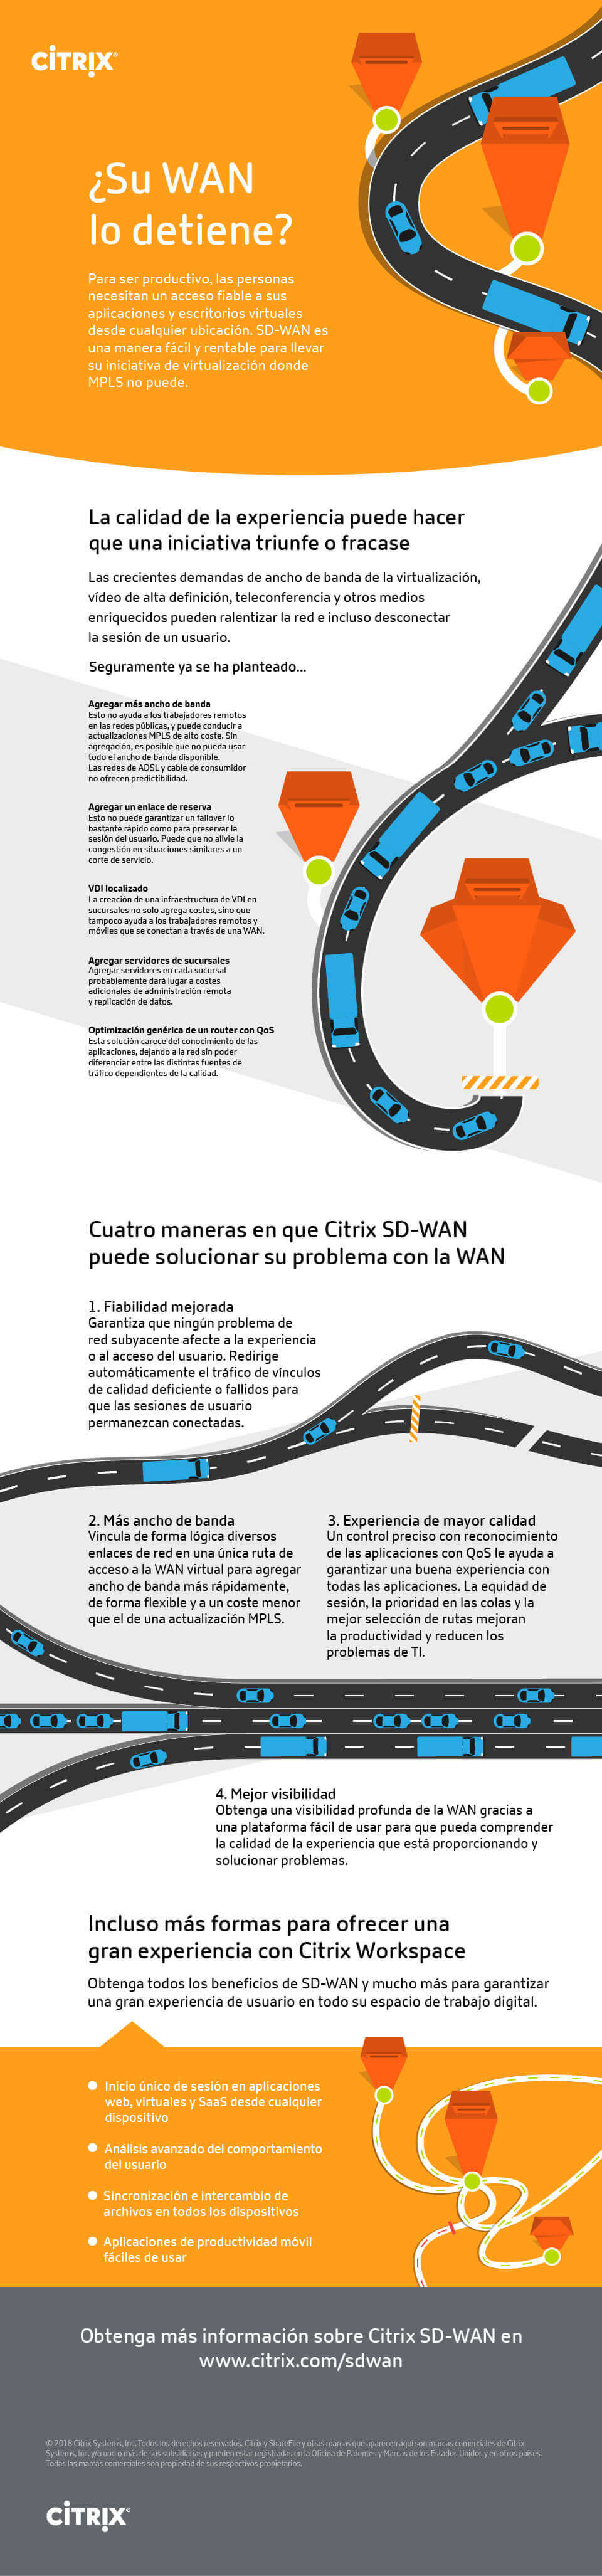 Wan Optimization: How to improve bandwidth and user experience